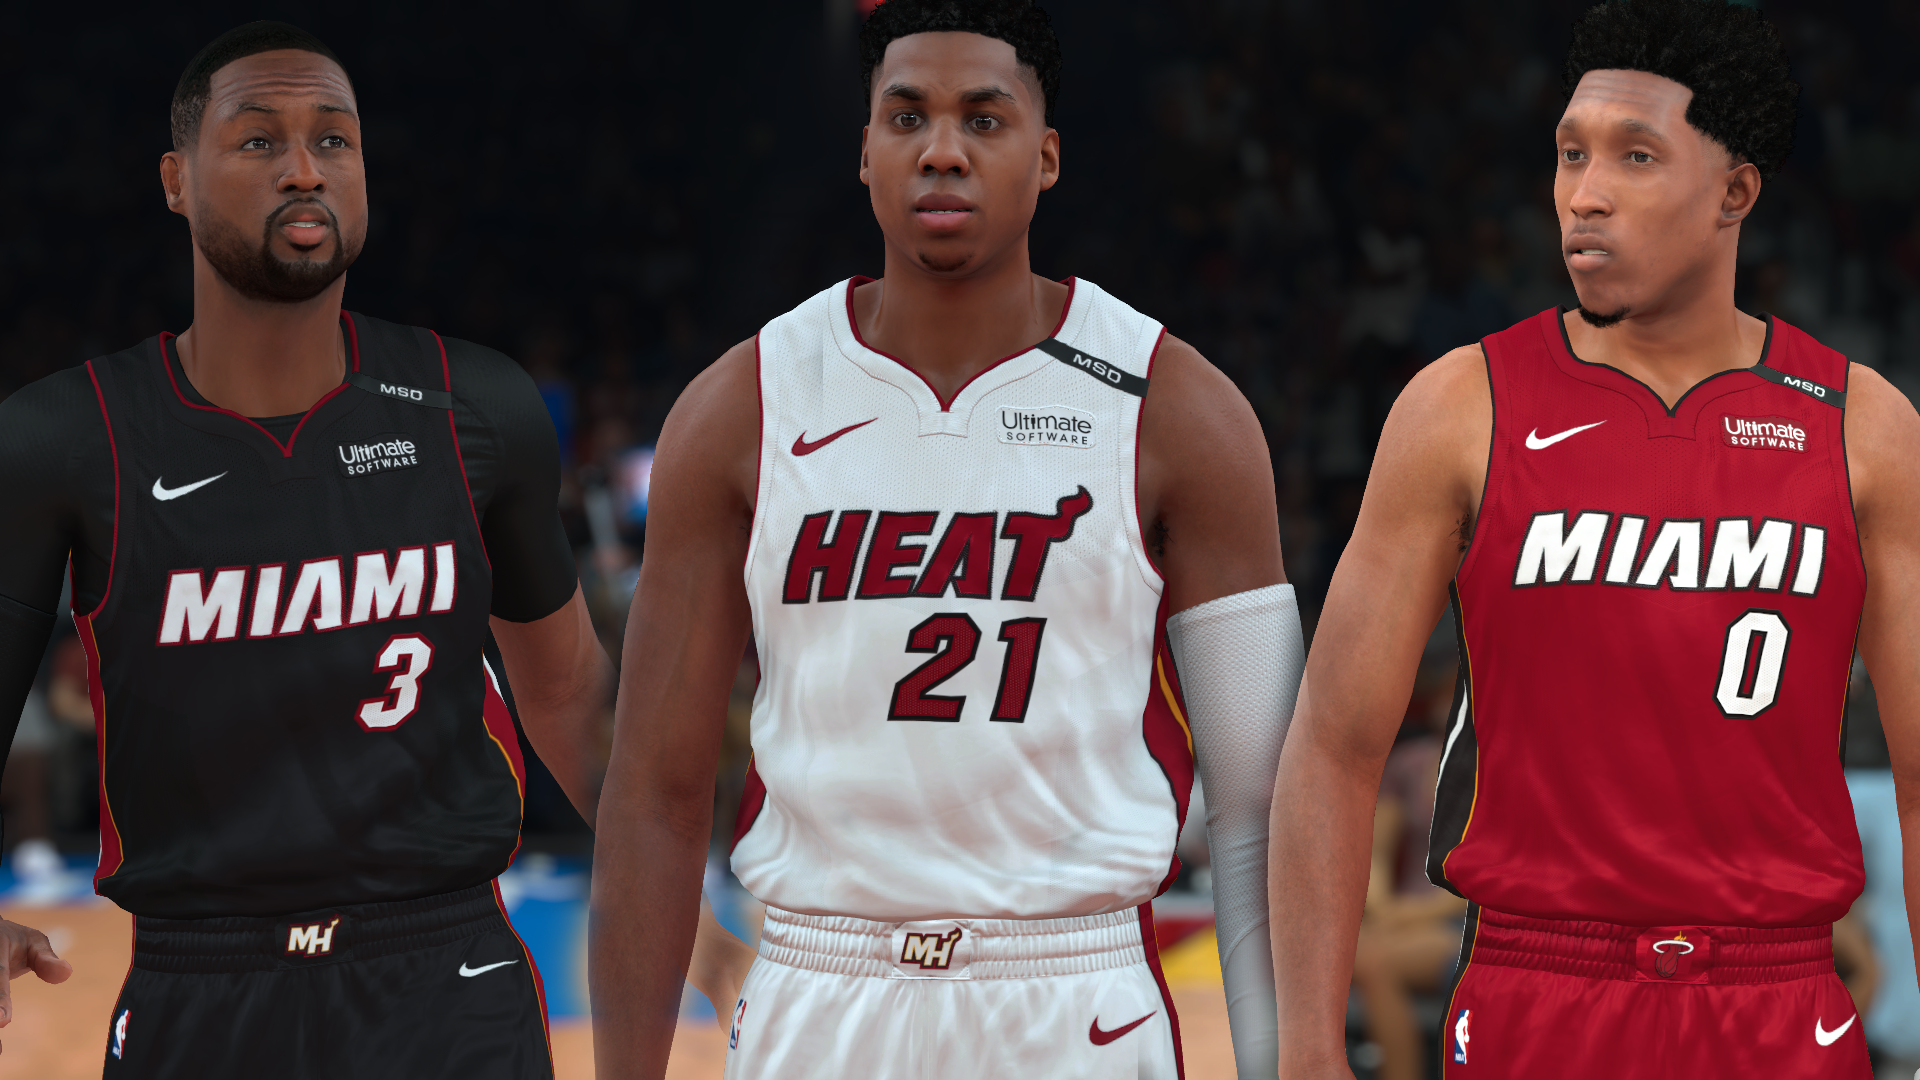 Miami Heat Jersey with MSD Patch (pinoy21)